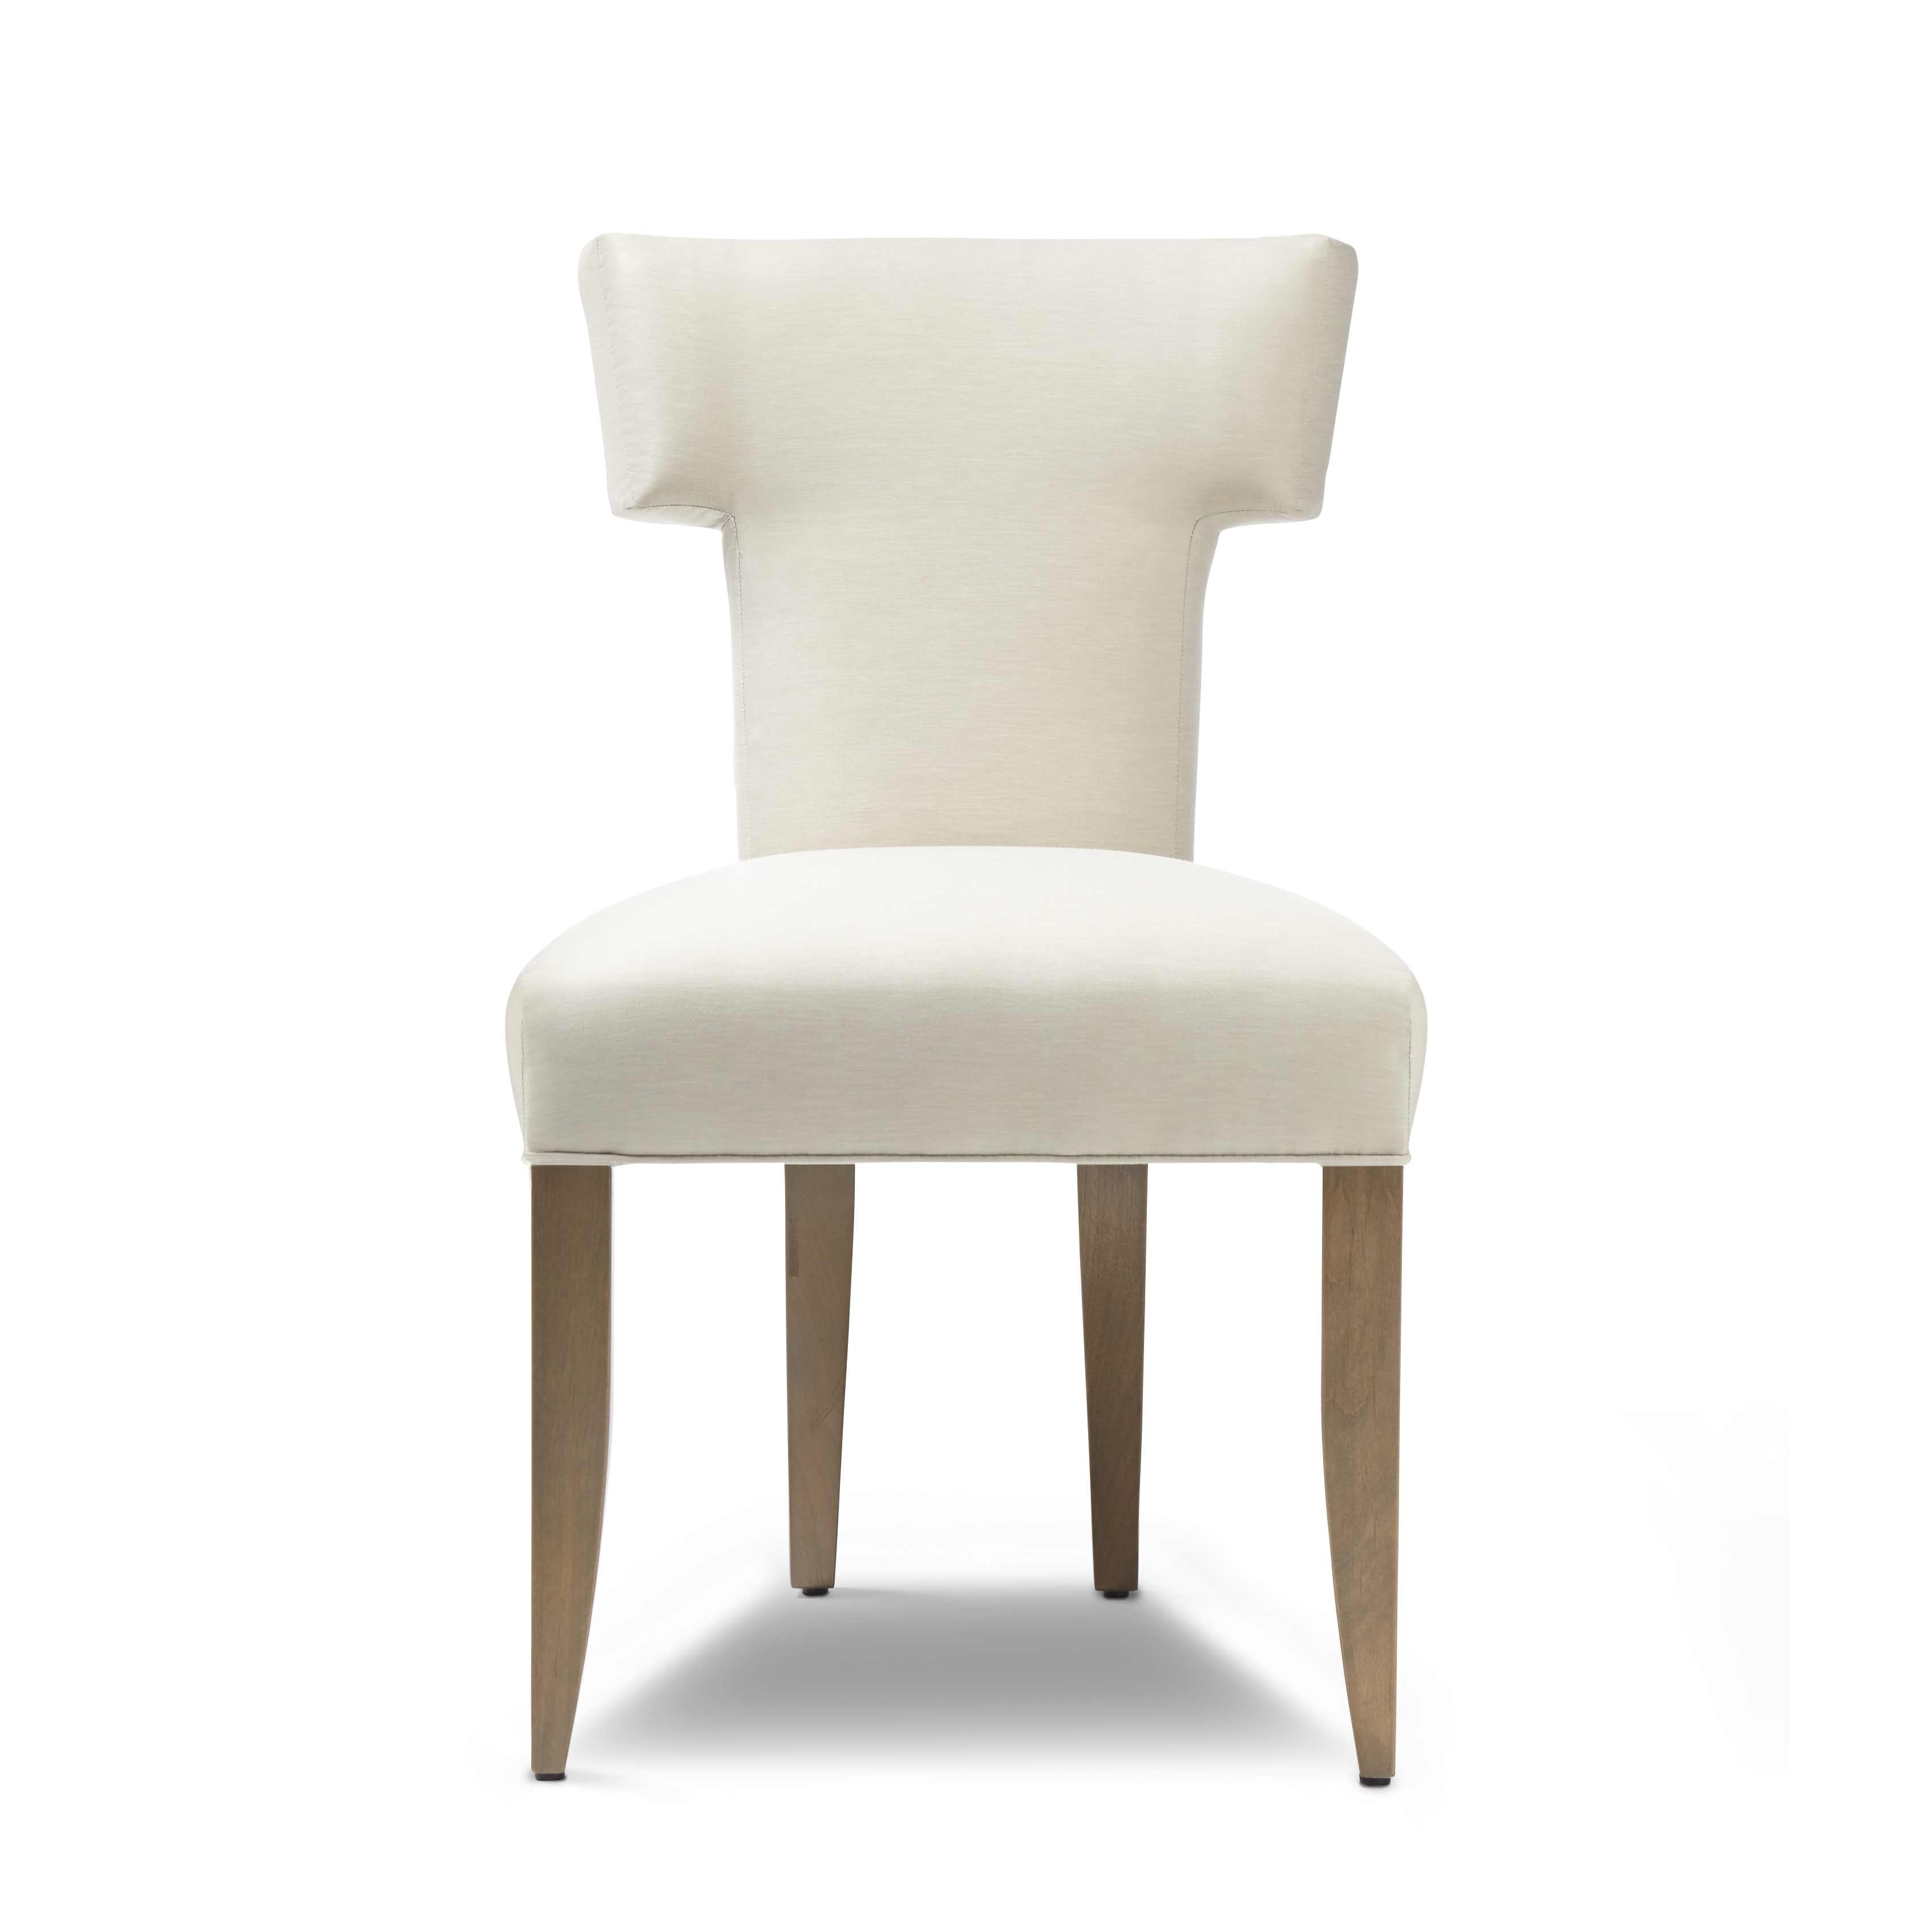 Dining Chairs Archives – Lazar With Regard To 2017 Clint Side Chairs (Gallery 11 of 20)